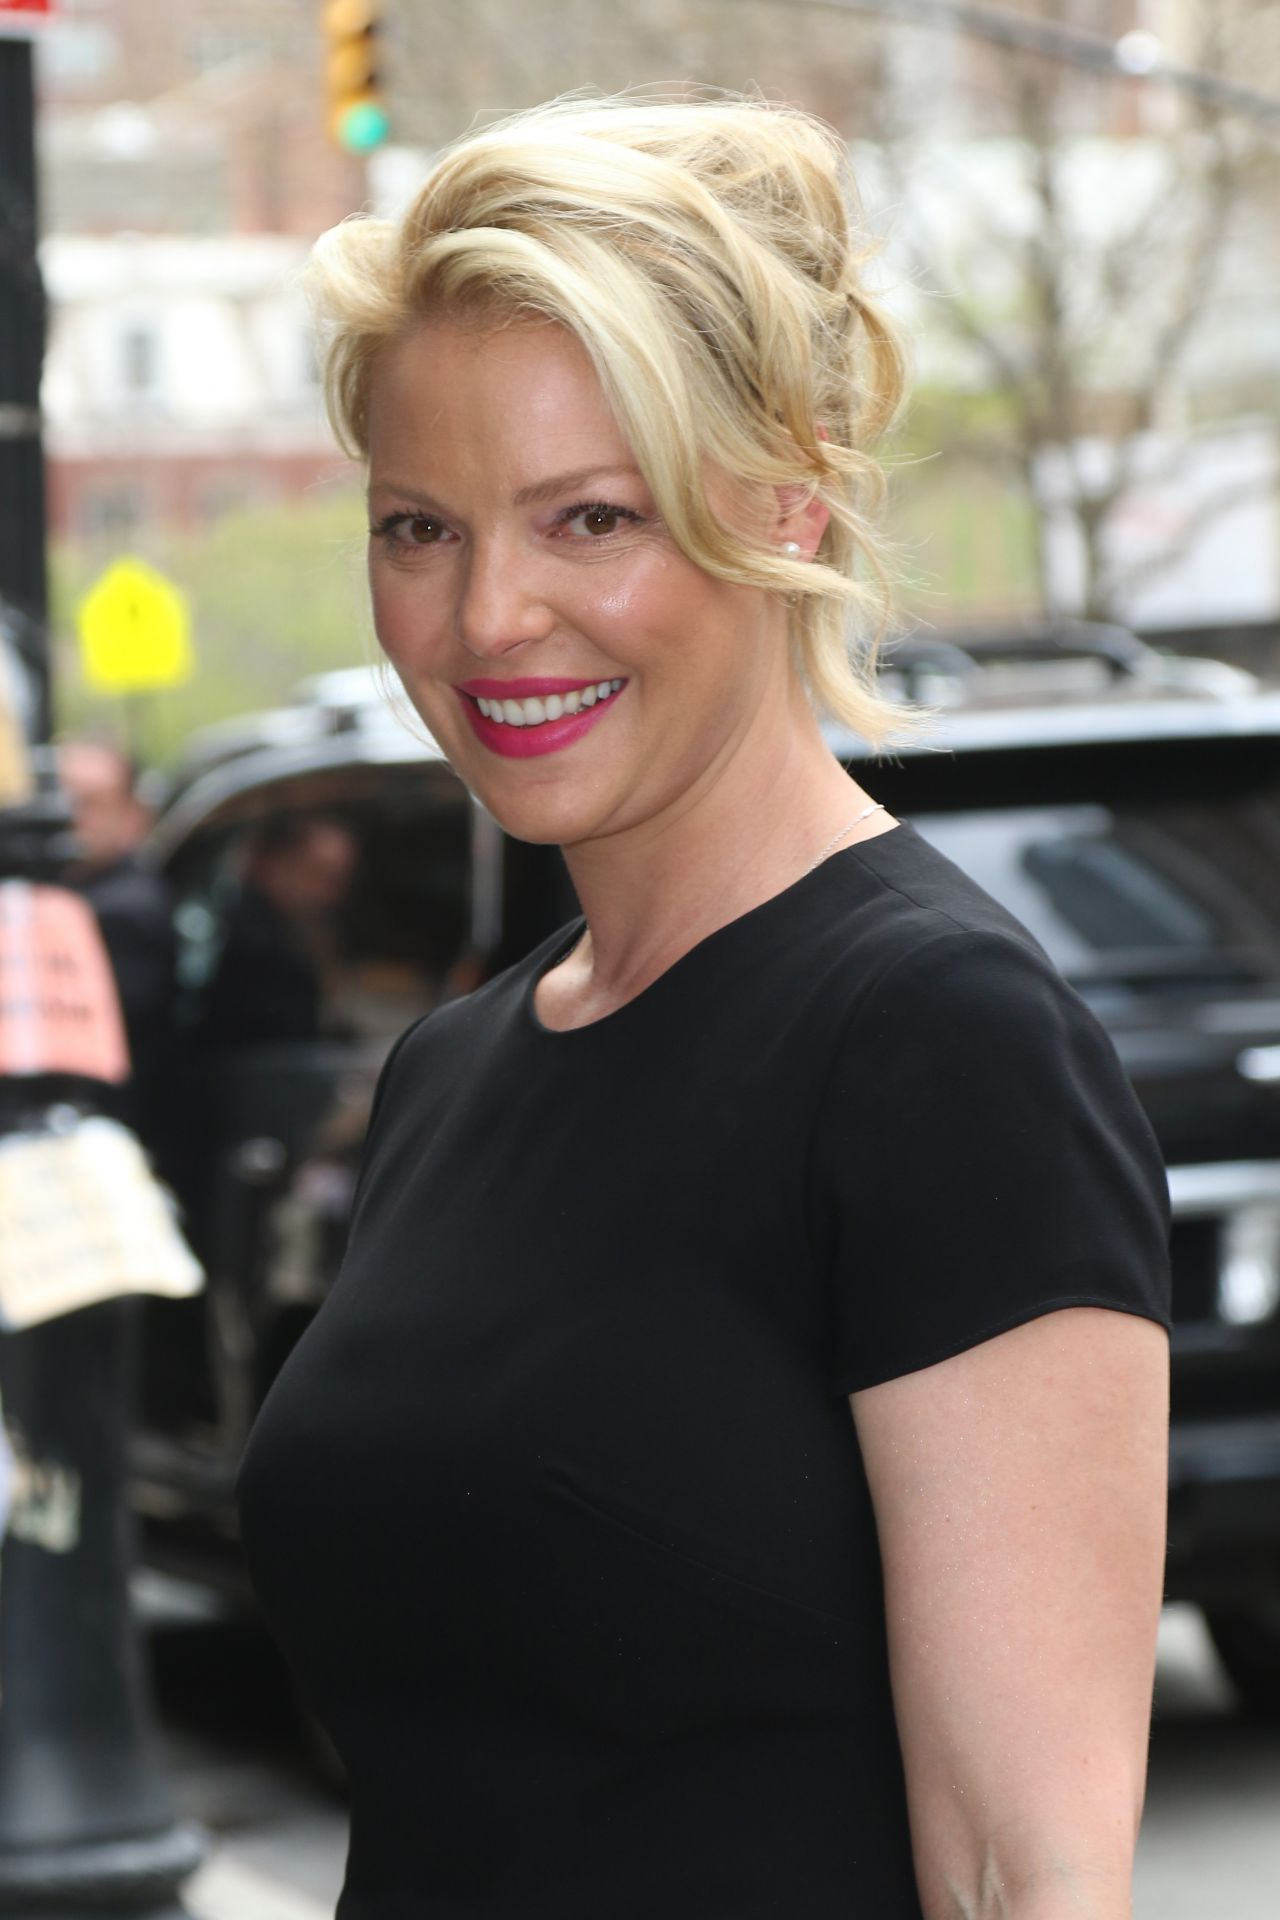 Katherine Heigl Arriving to Appear on 'The Chew' TV Show ... Katherine Heigl